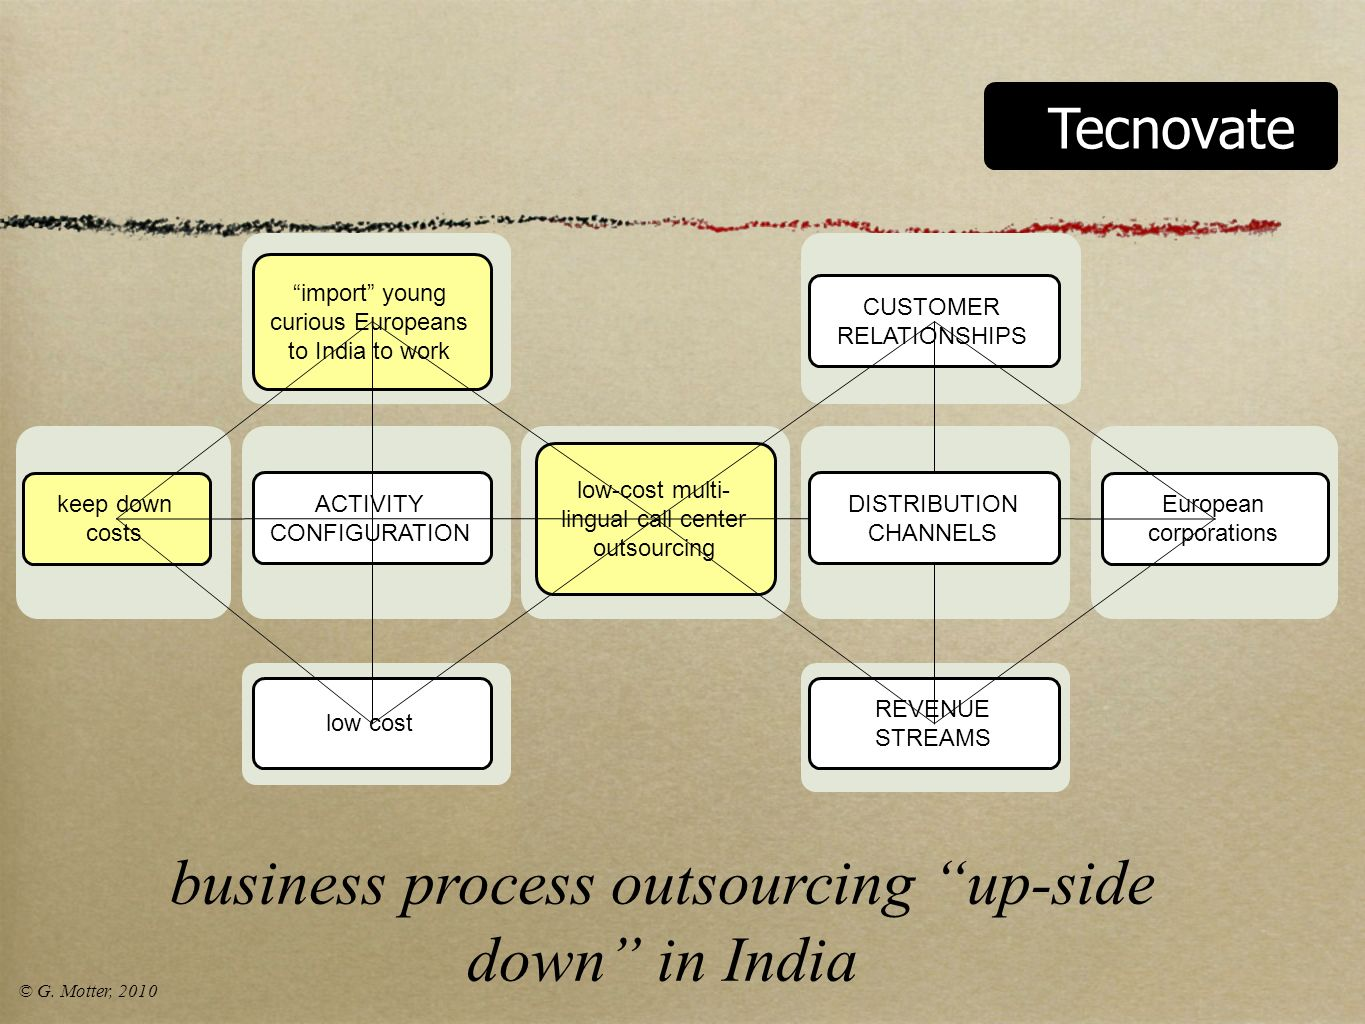 business process outsourcing up-side down in India